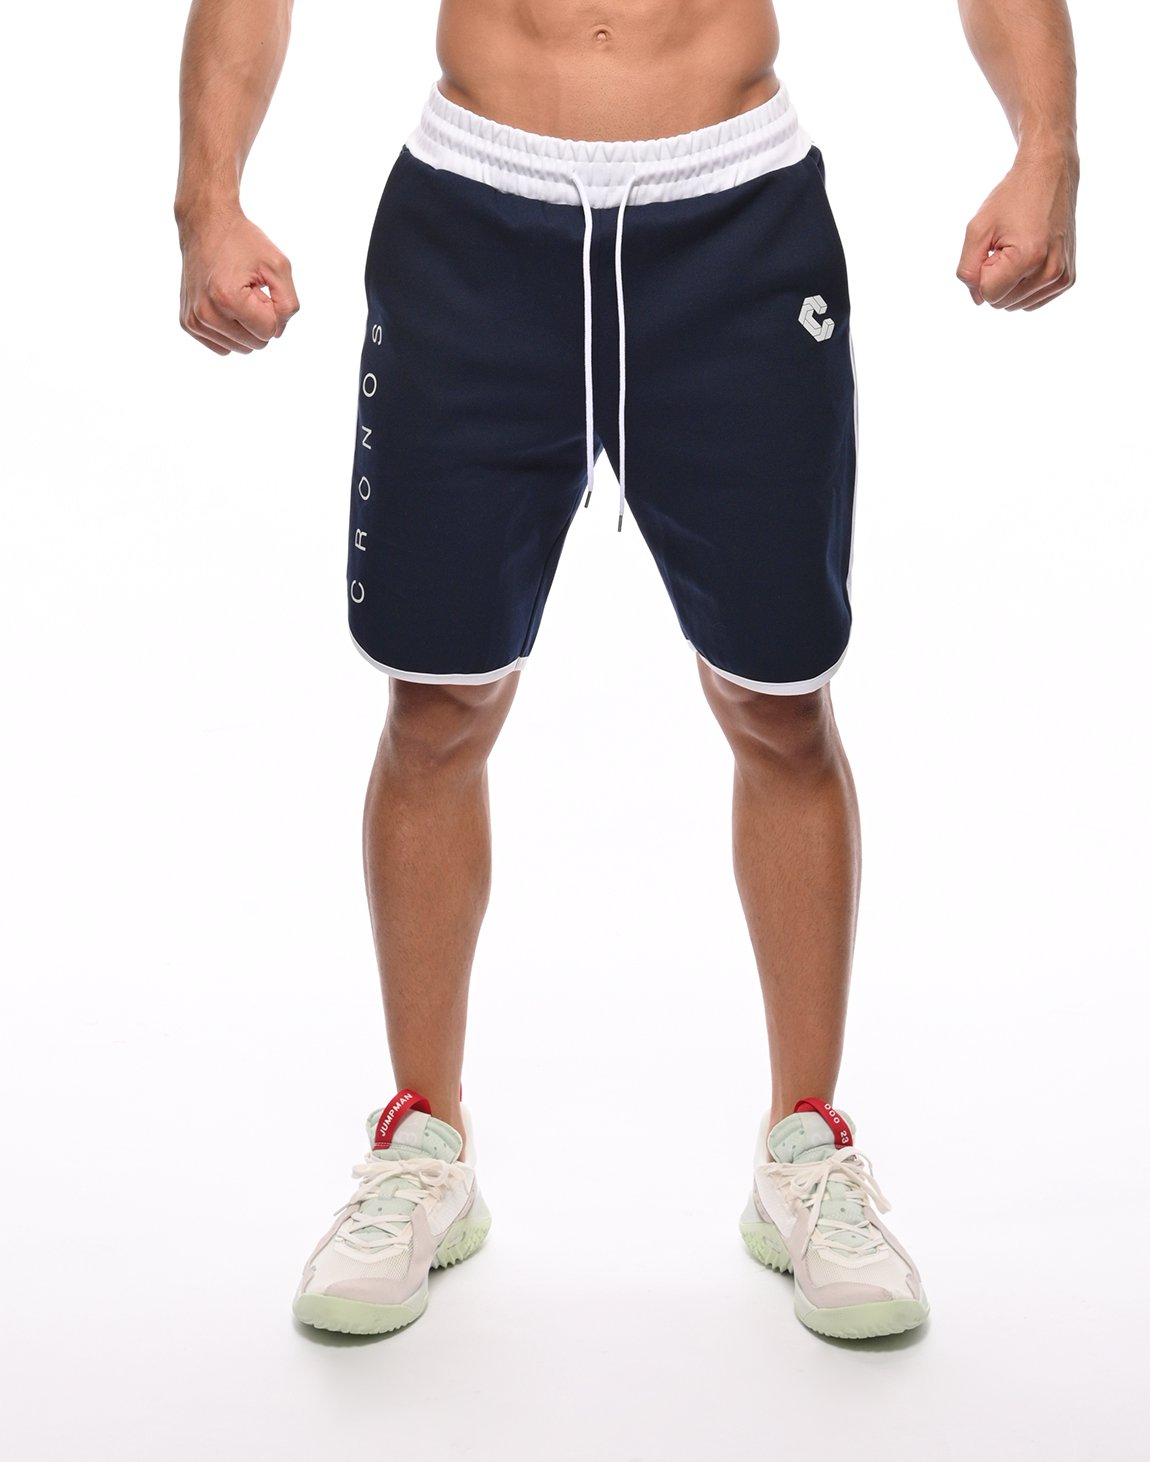 <img class='new_mark_img1' src='https://img.shop-pro.jp/img/new/icons55.gif' style='border:none;display:inline;margin:0px;padding:0px;width:auto;' />CRONOS 2STRIPE SHORTS【NAVY】